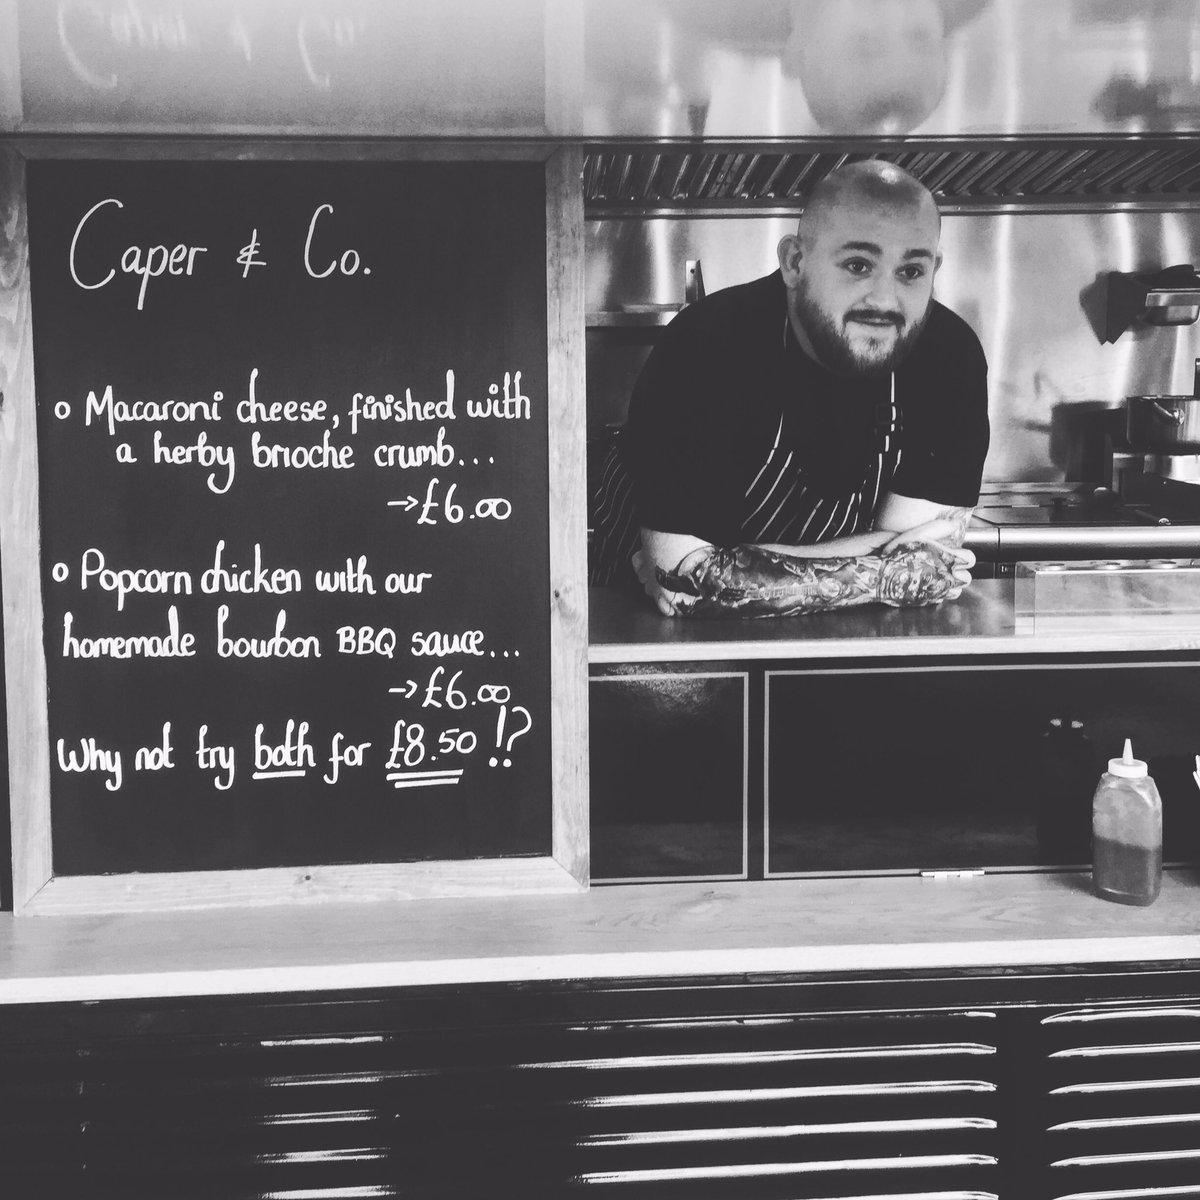 RT @caperandberry The first outing of our H Van @LoseleyPark with @Loseleyevents #ummm #streetfood #eventprofs #greatforeveningfood